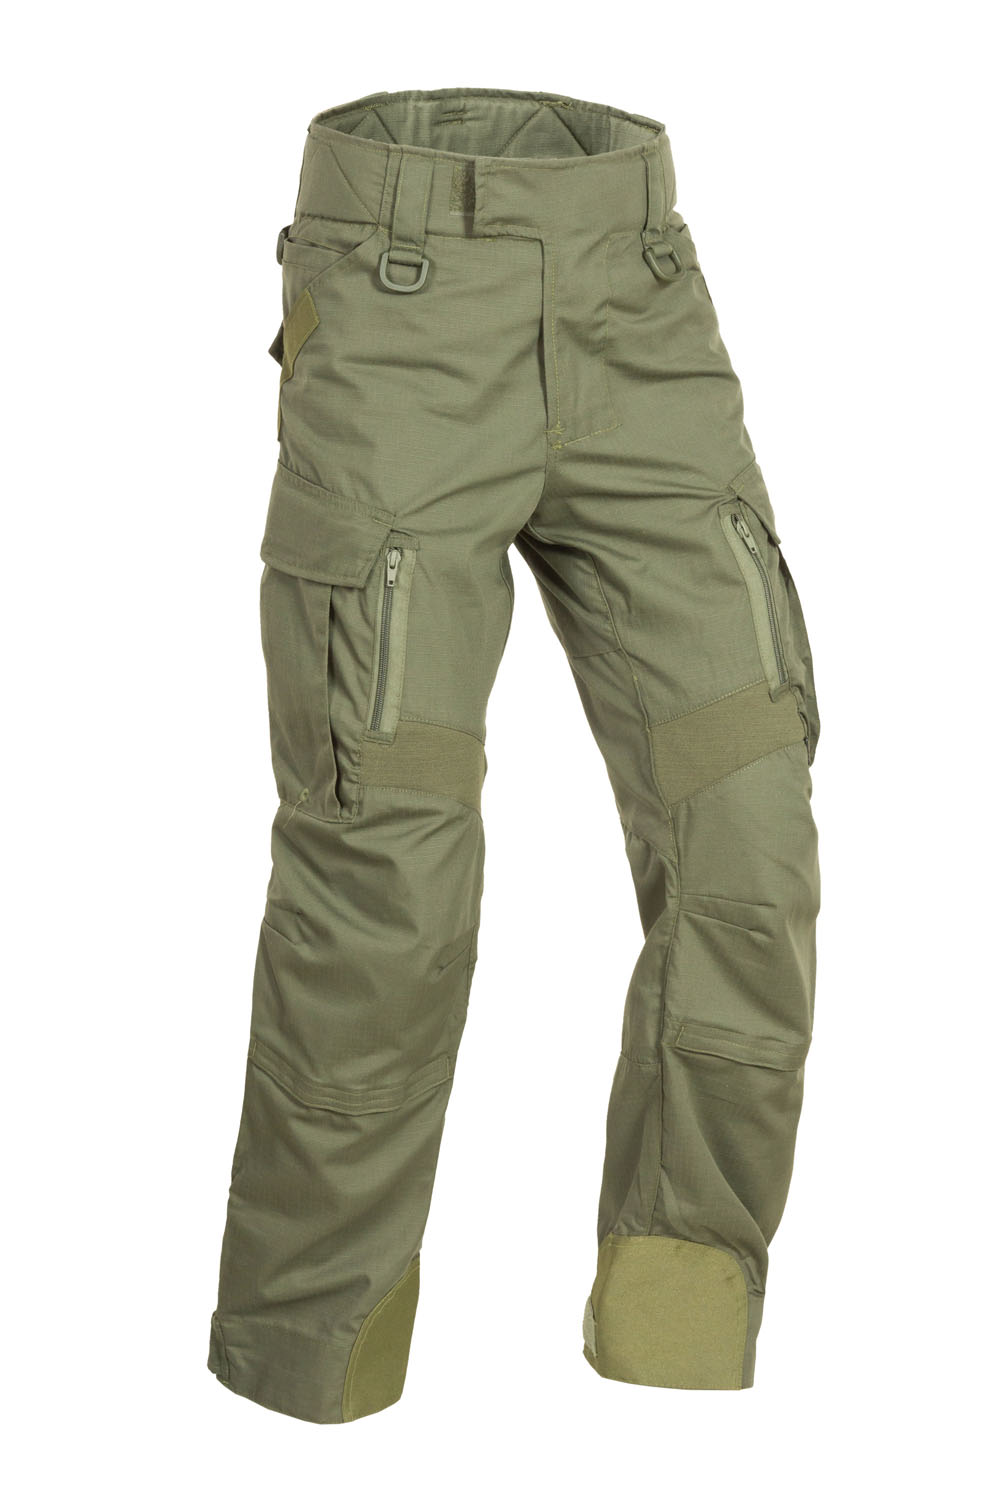 Field Ambush Pants